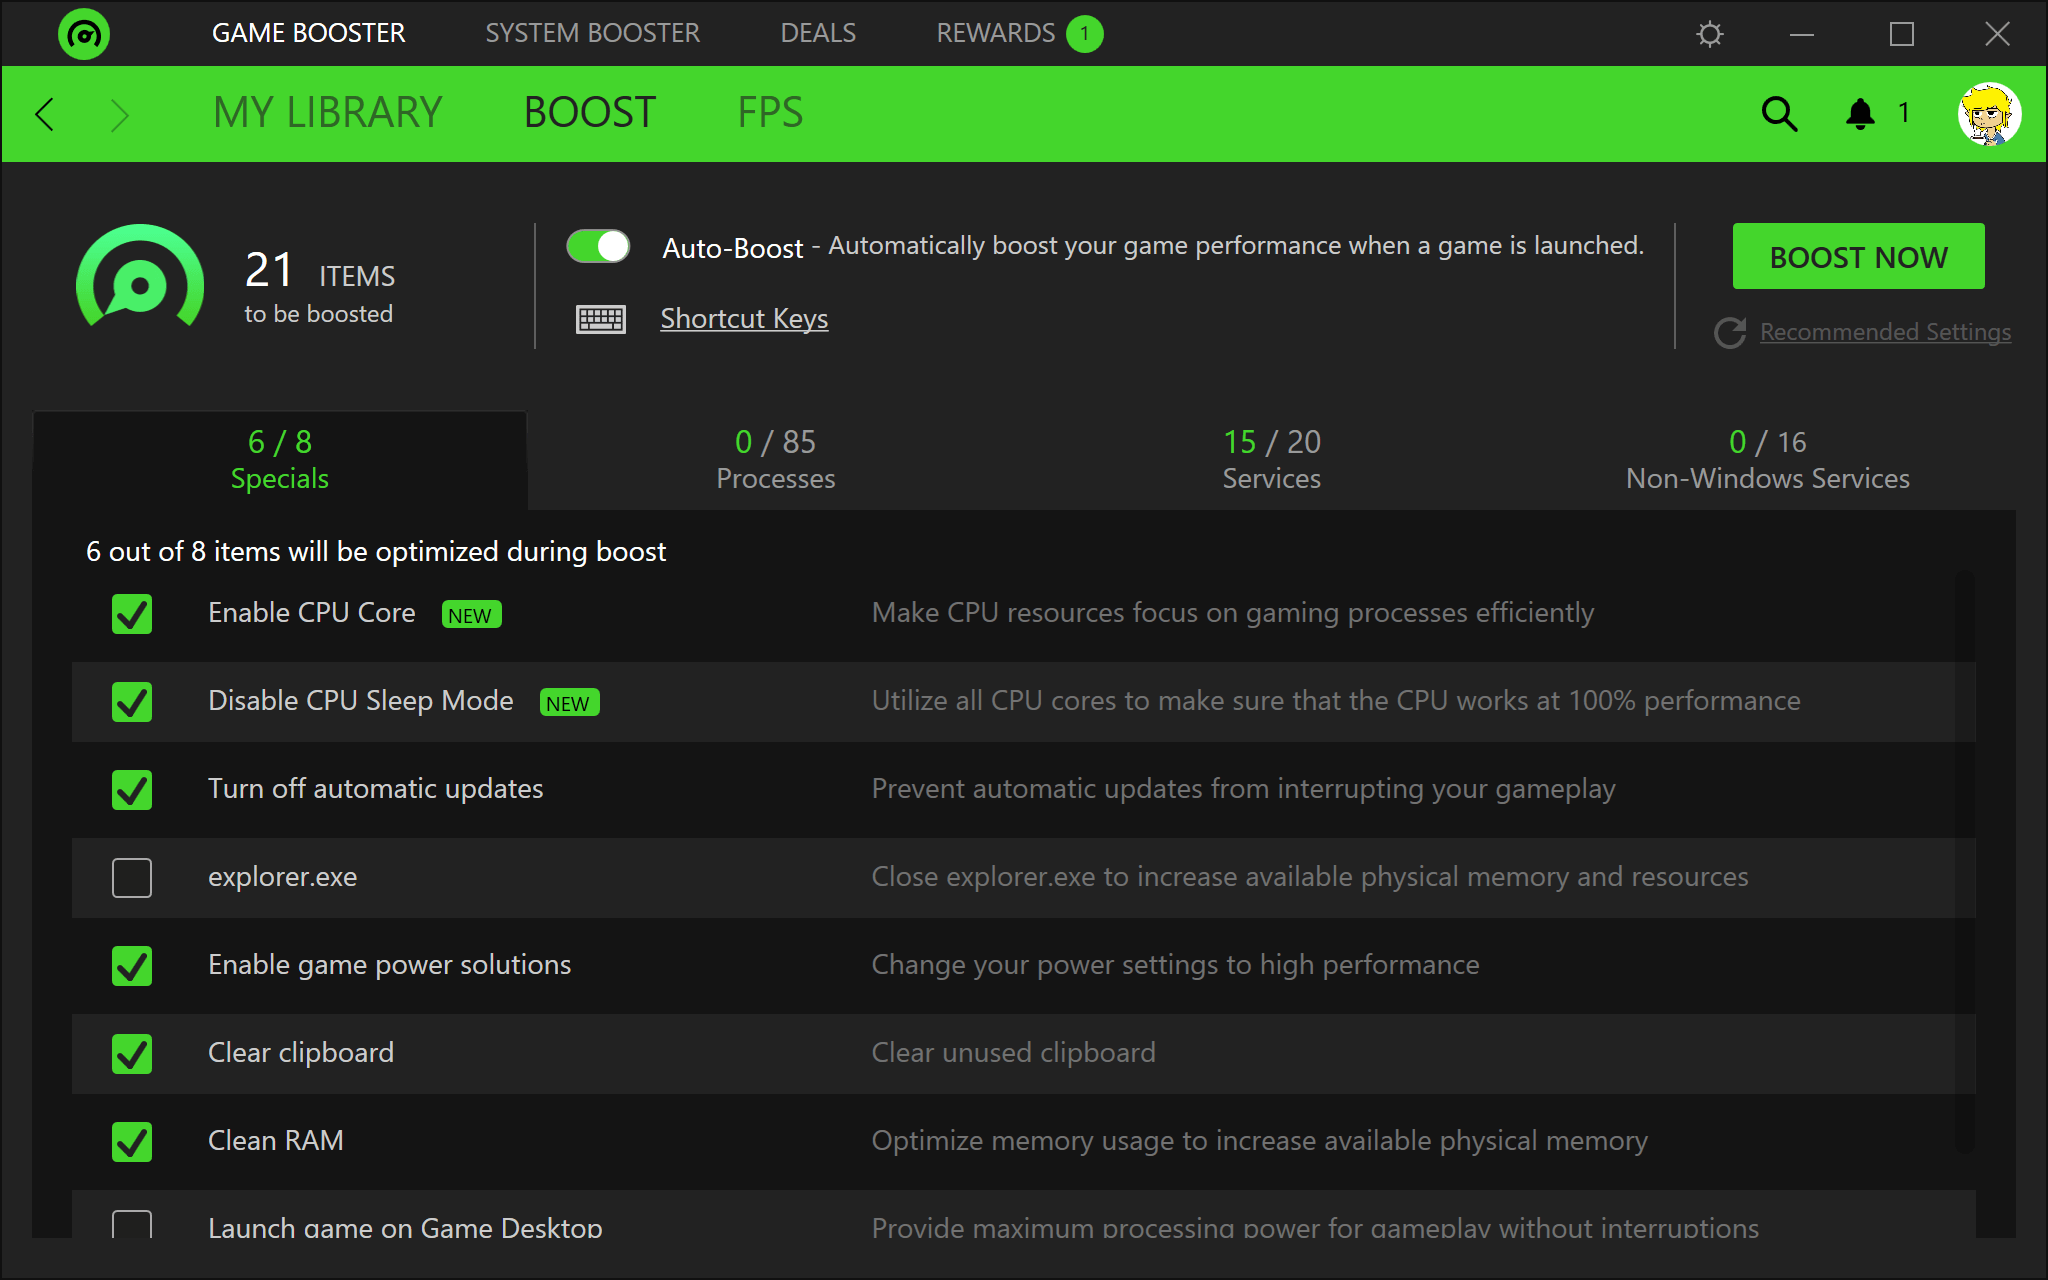 Razer Cortex - Great Game Booster Utility